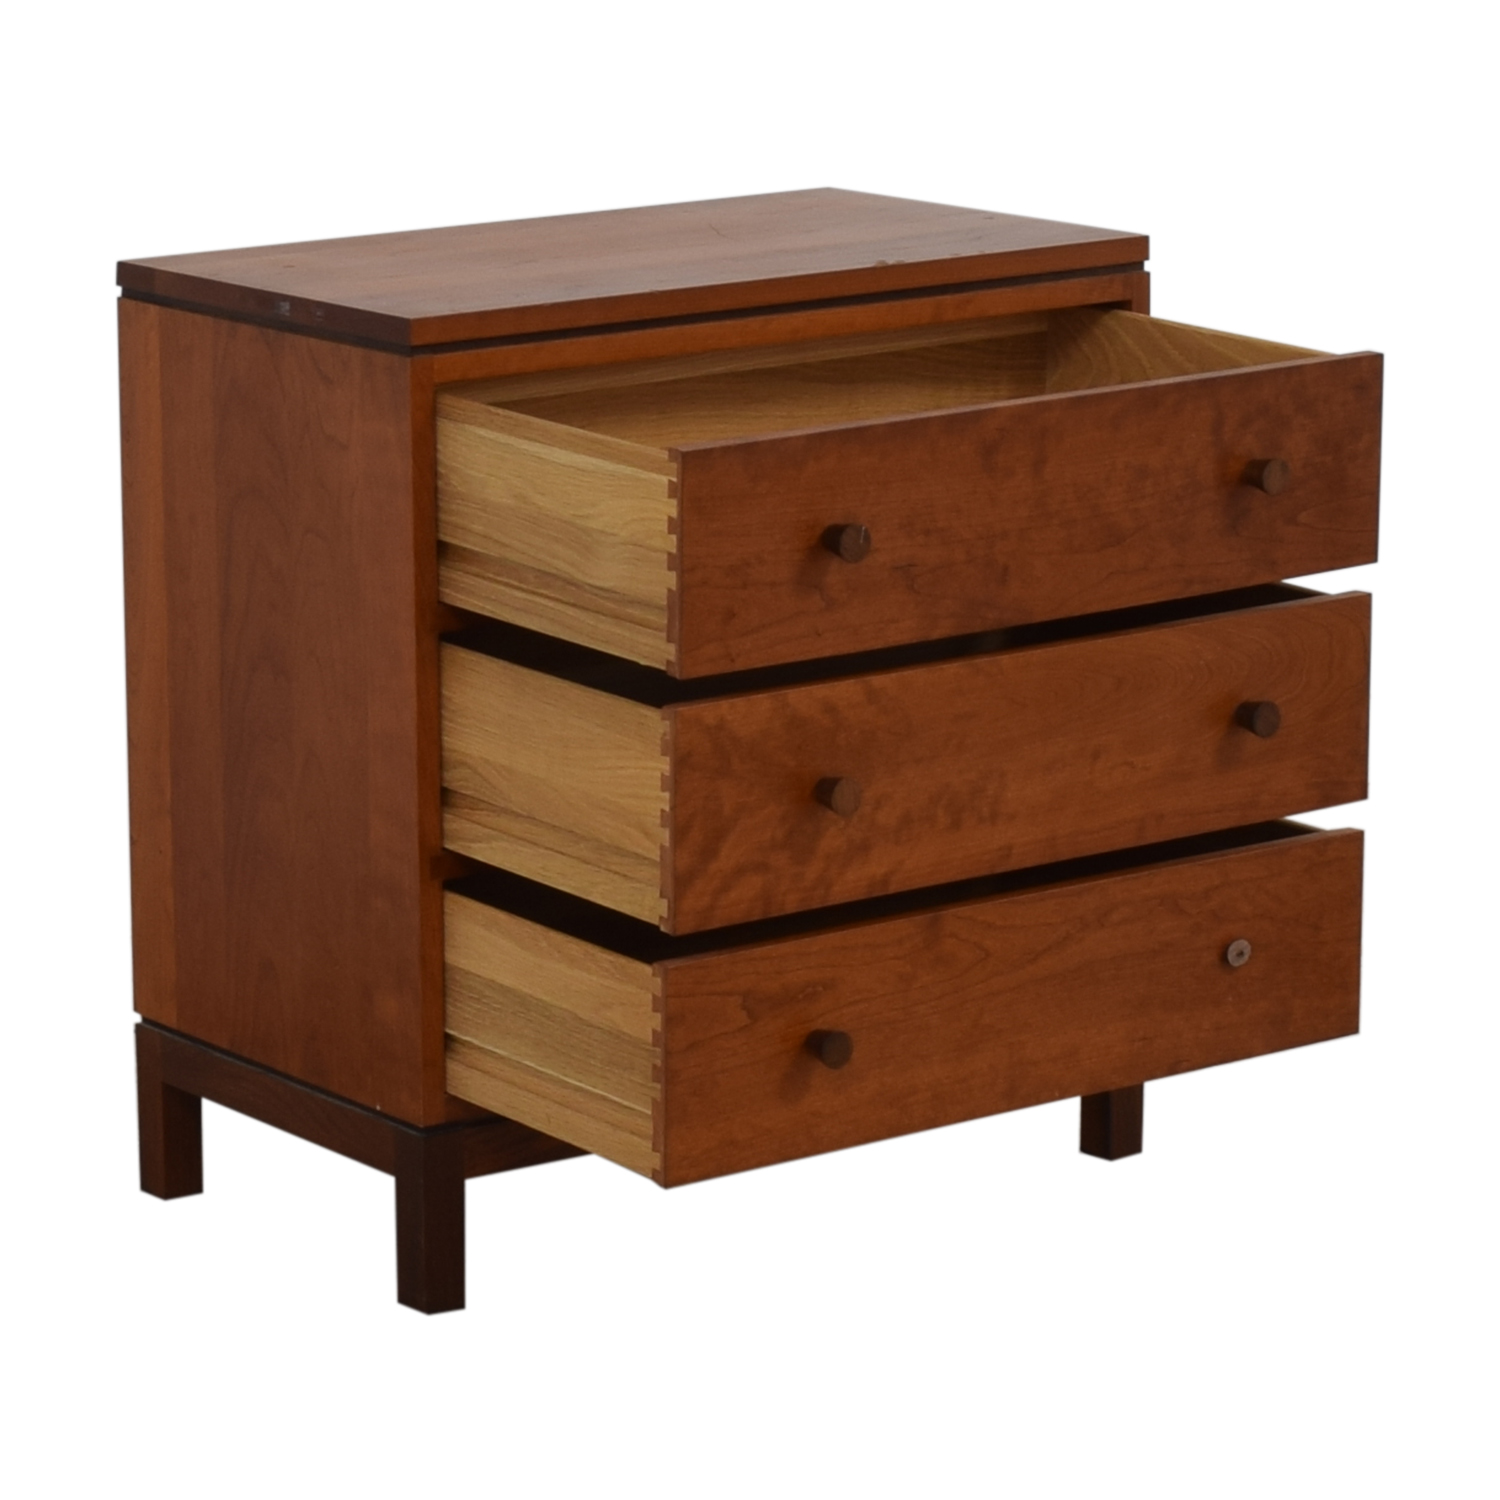 Stickley Furniture Stickley Furniture Shaker Style Dresser Storage